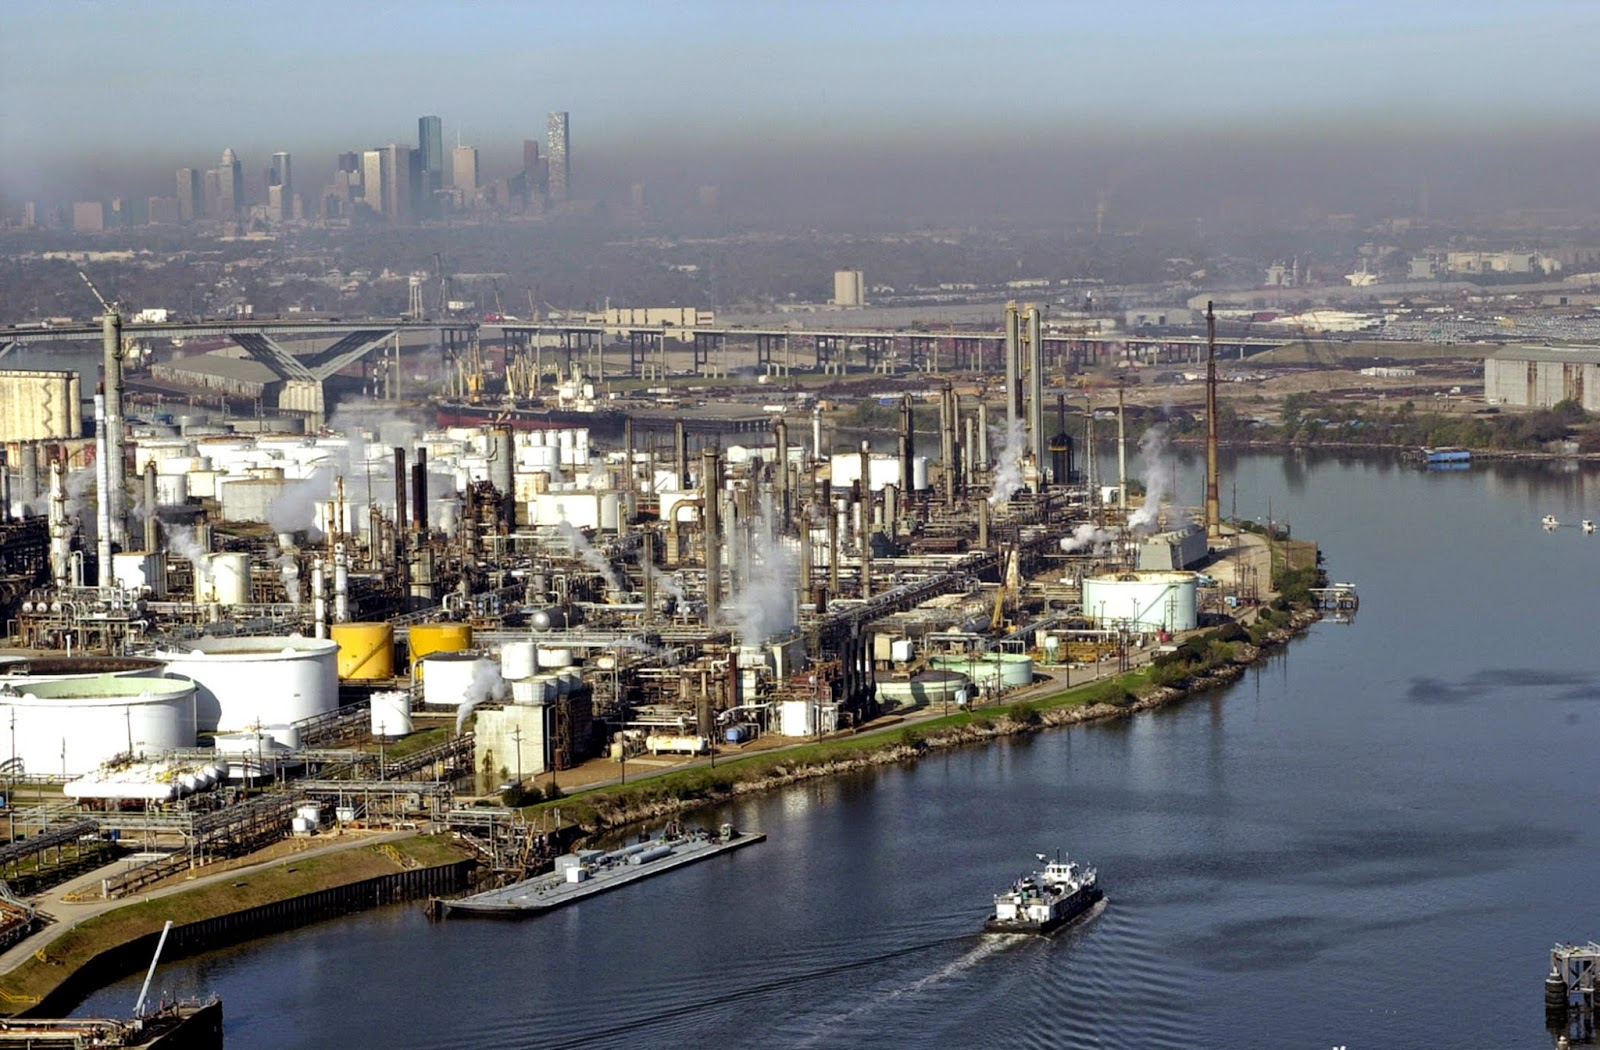 Image of the Houston Ship Channel